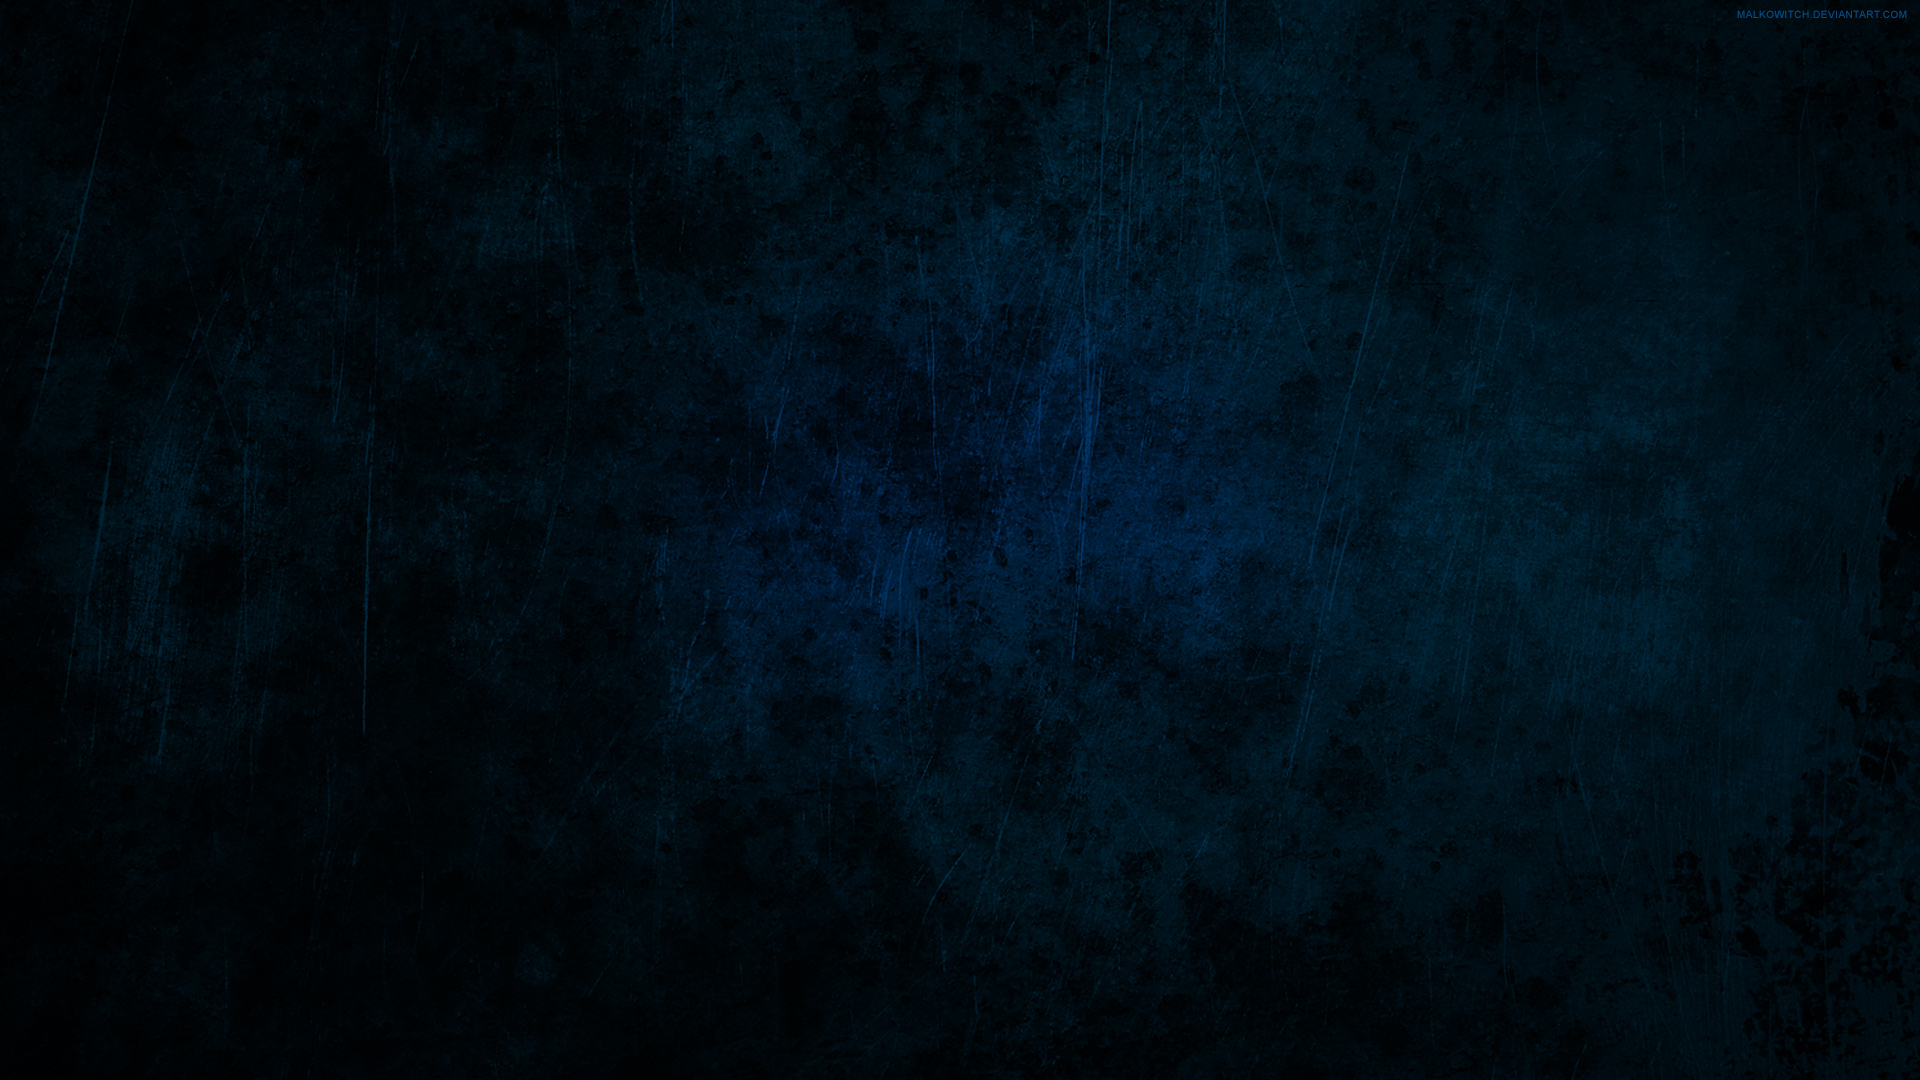 Dark Blue Wallpaper by malkowitch on